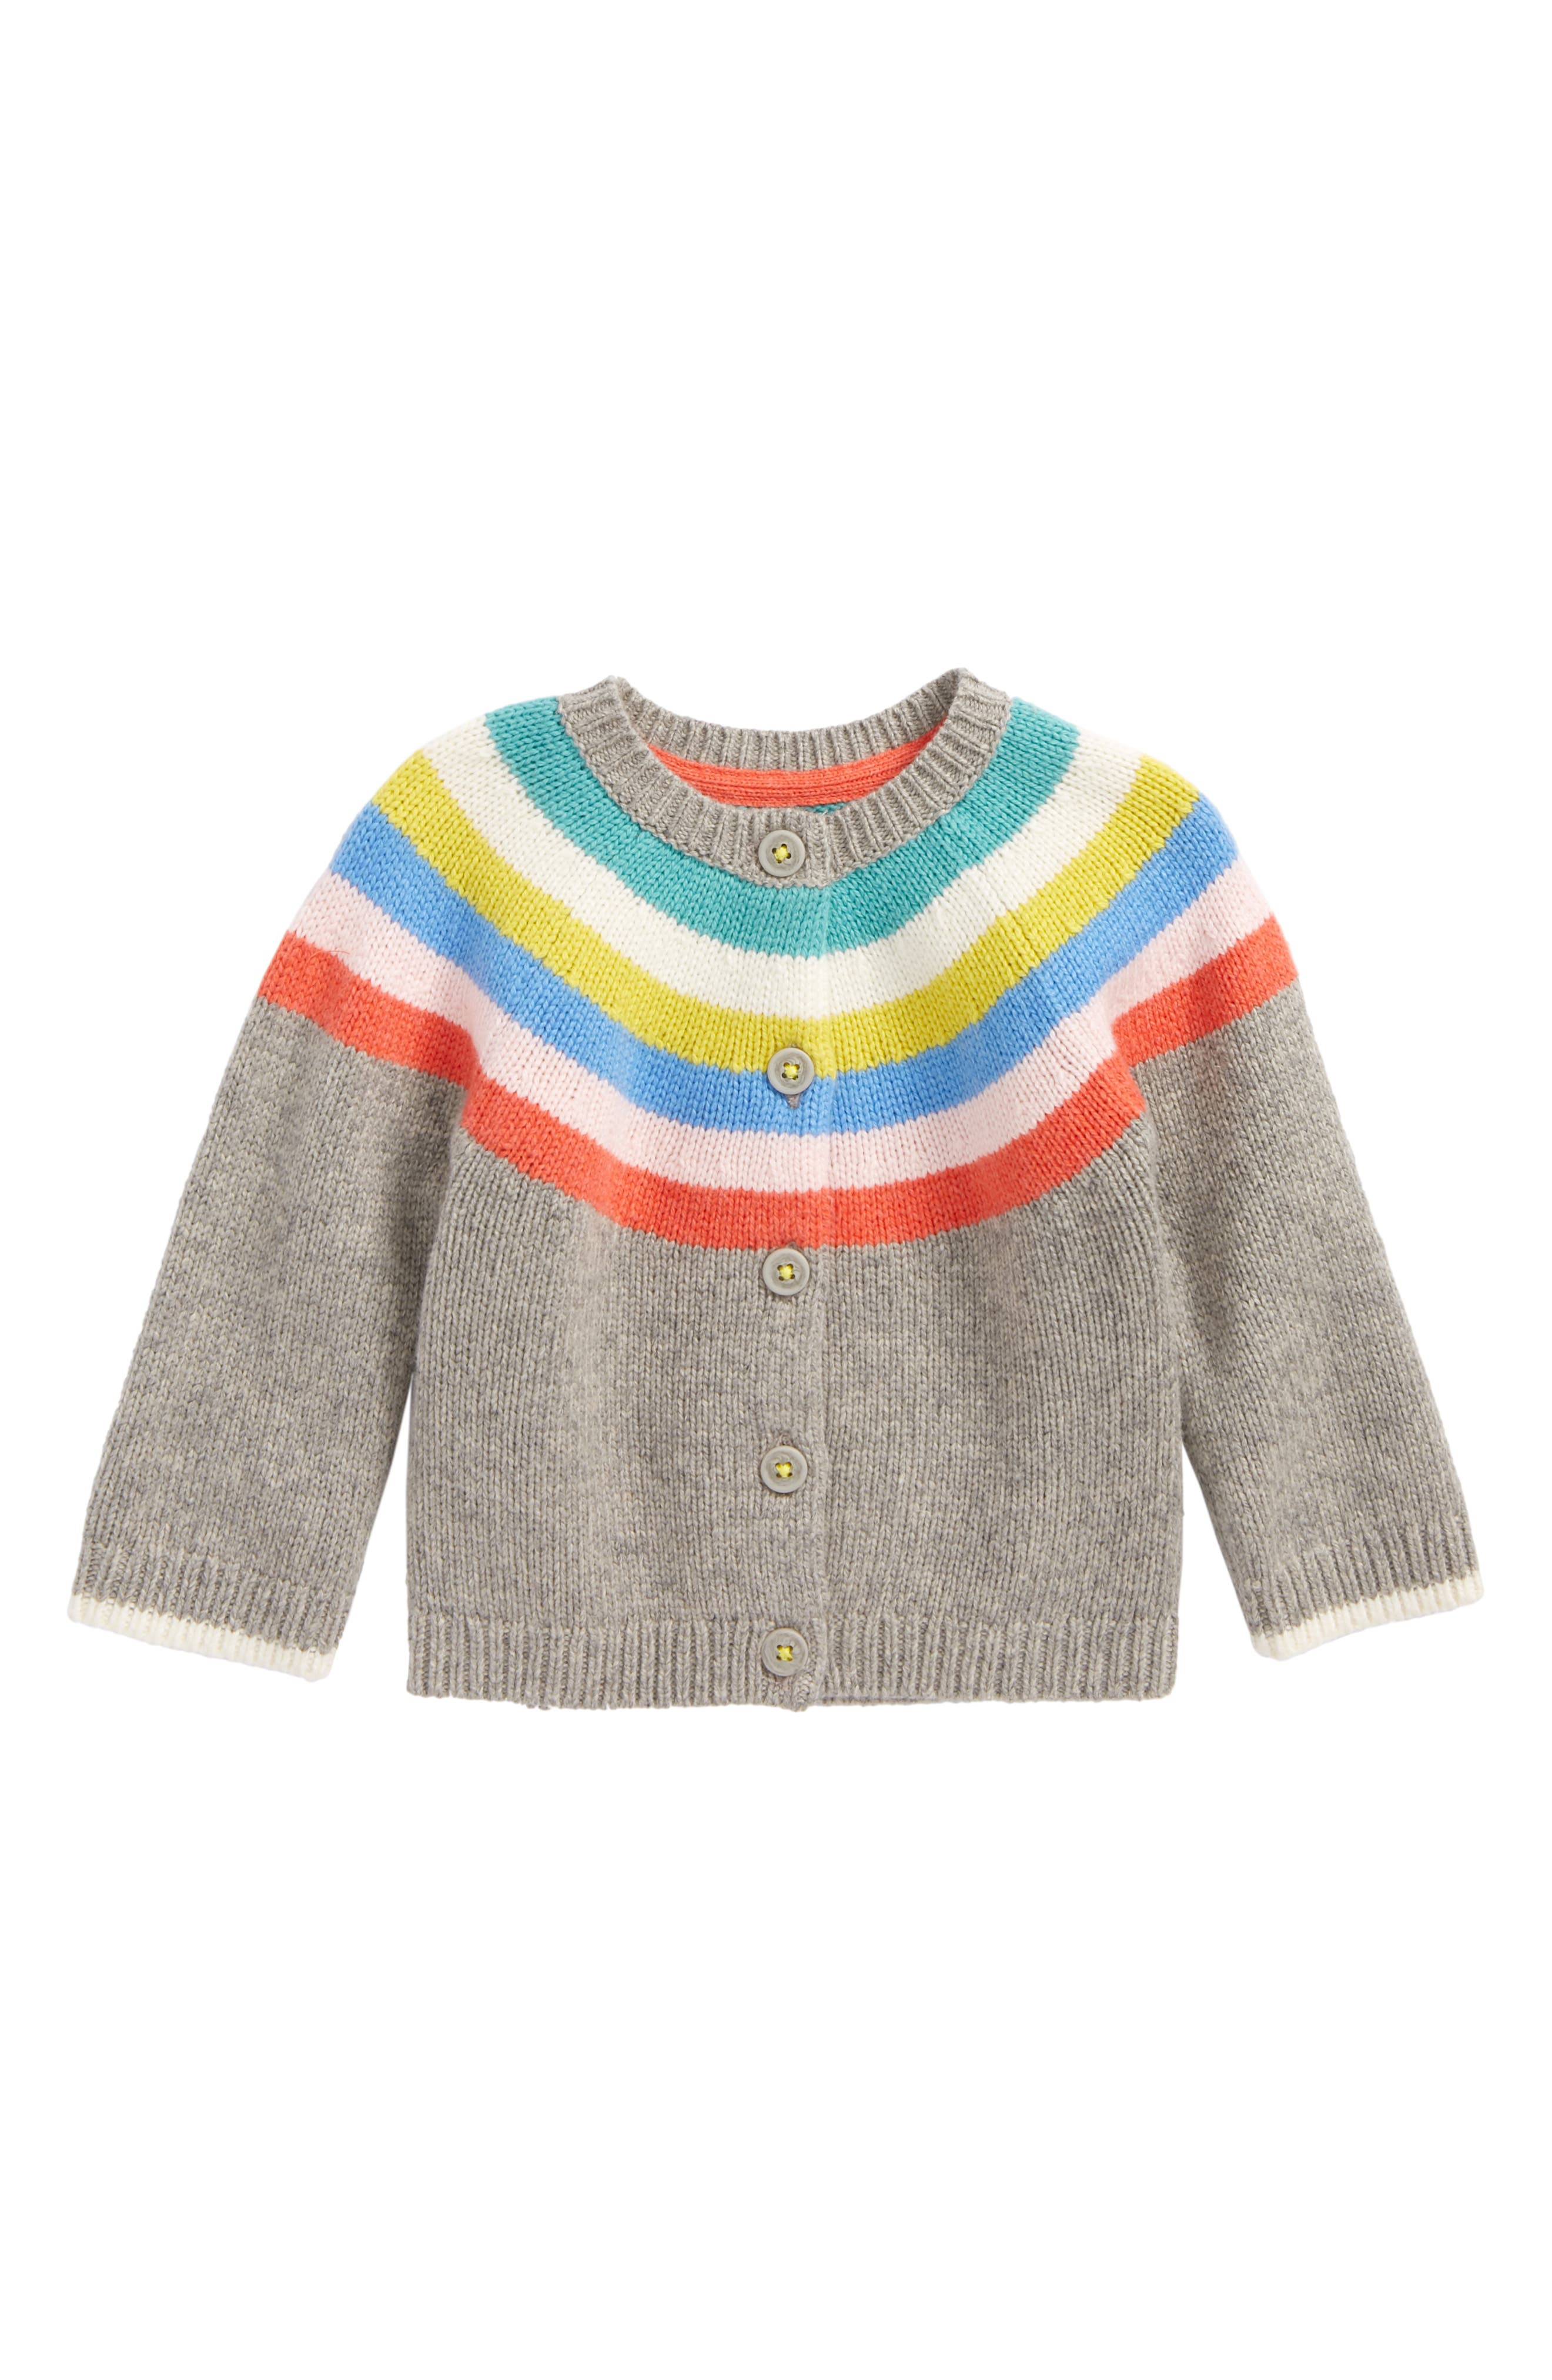 Rainbow Stripe Cardigan,                             Main thumbnail 1, color,                             062